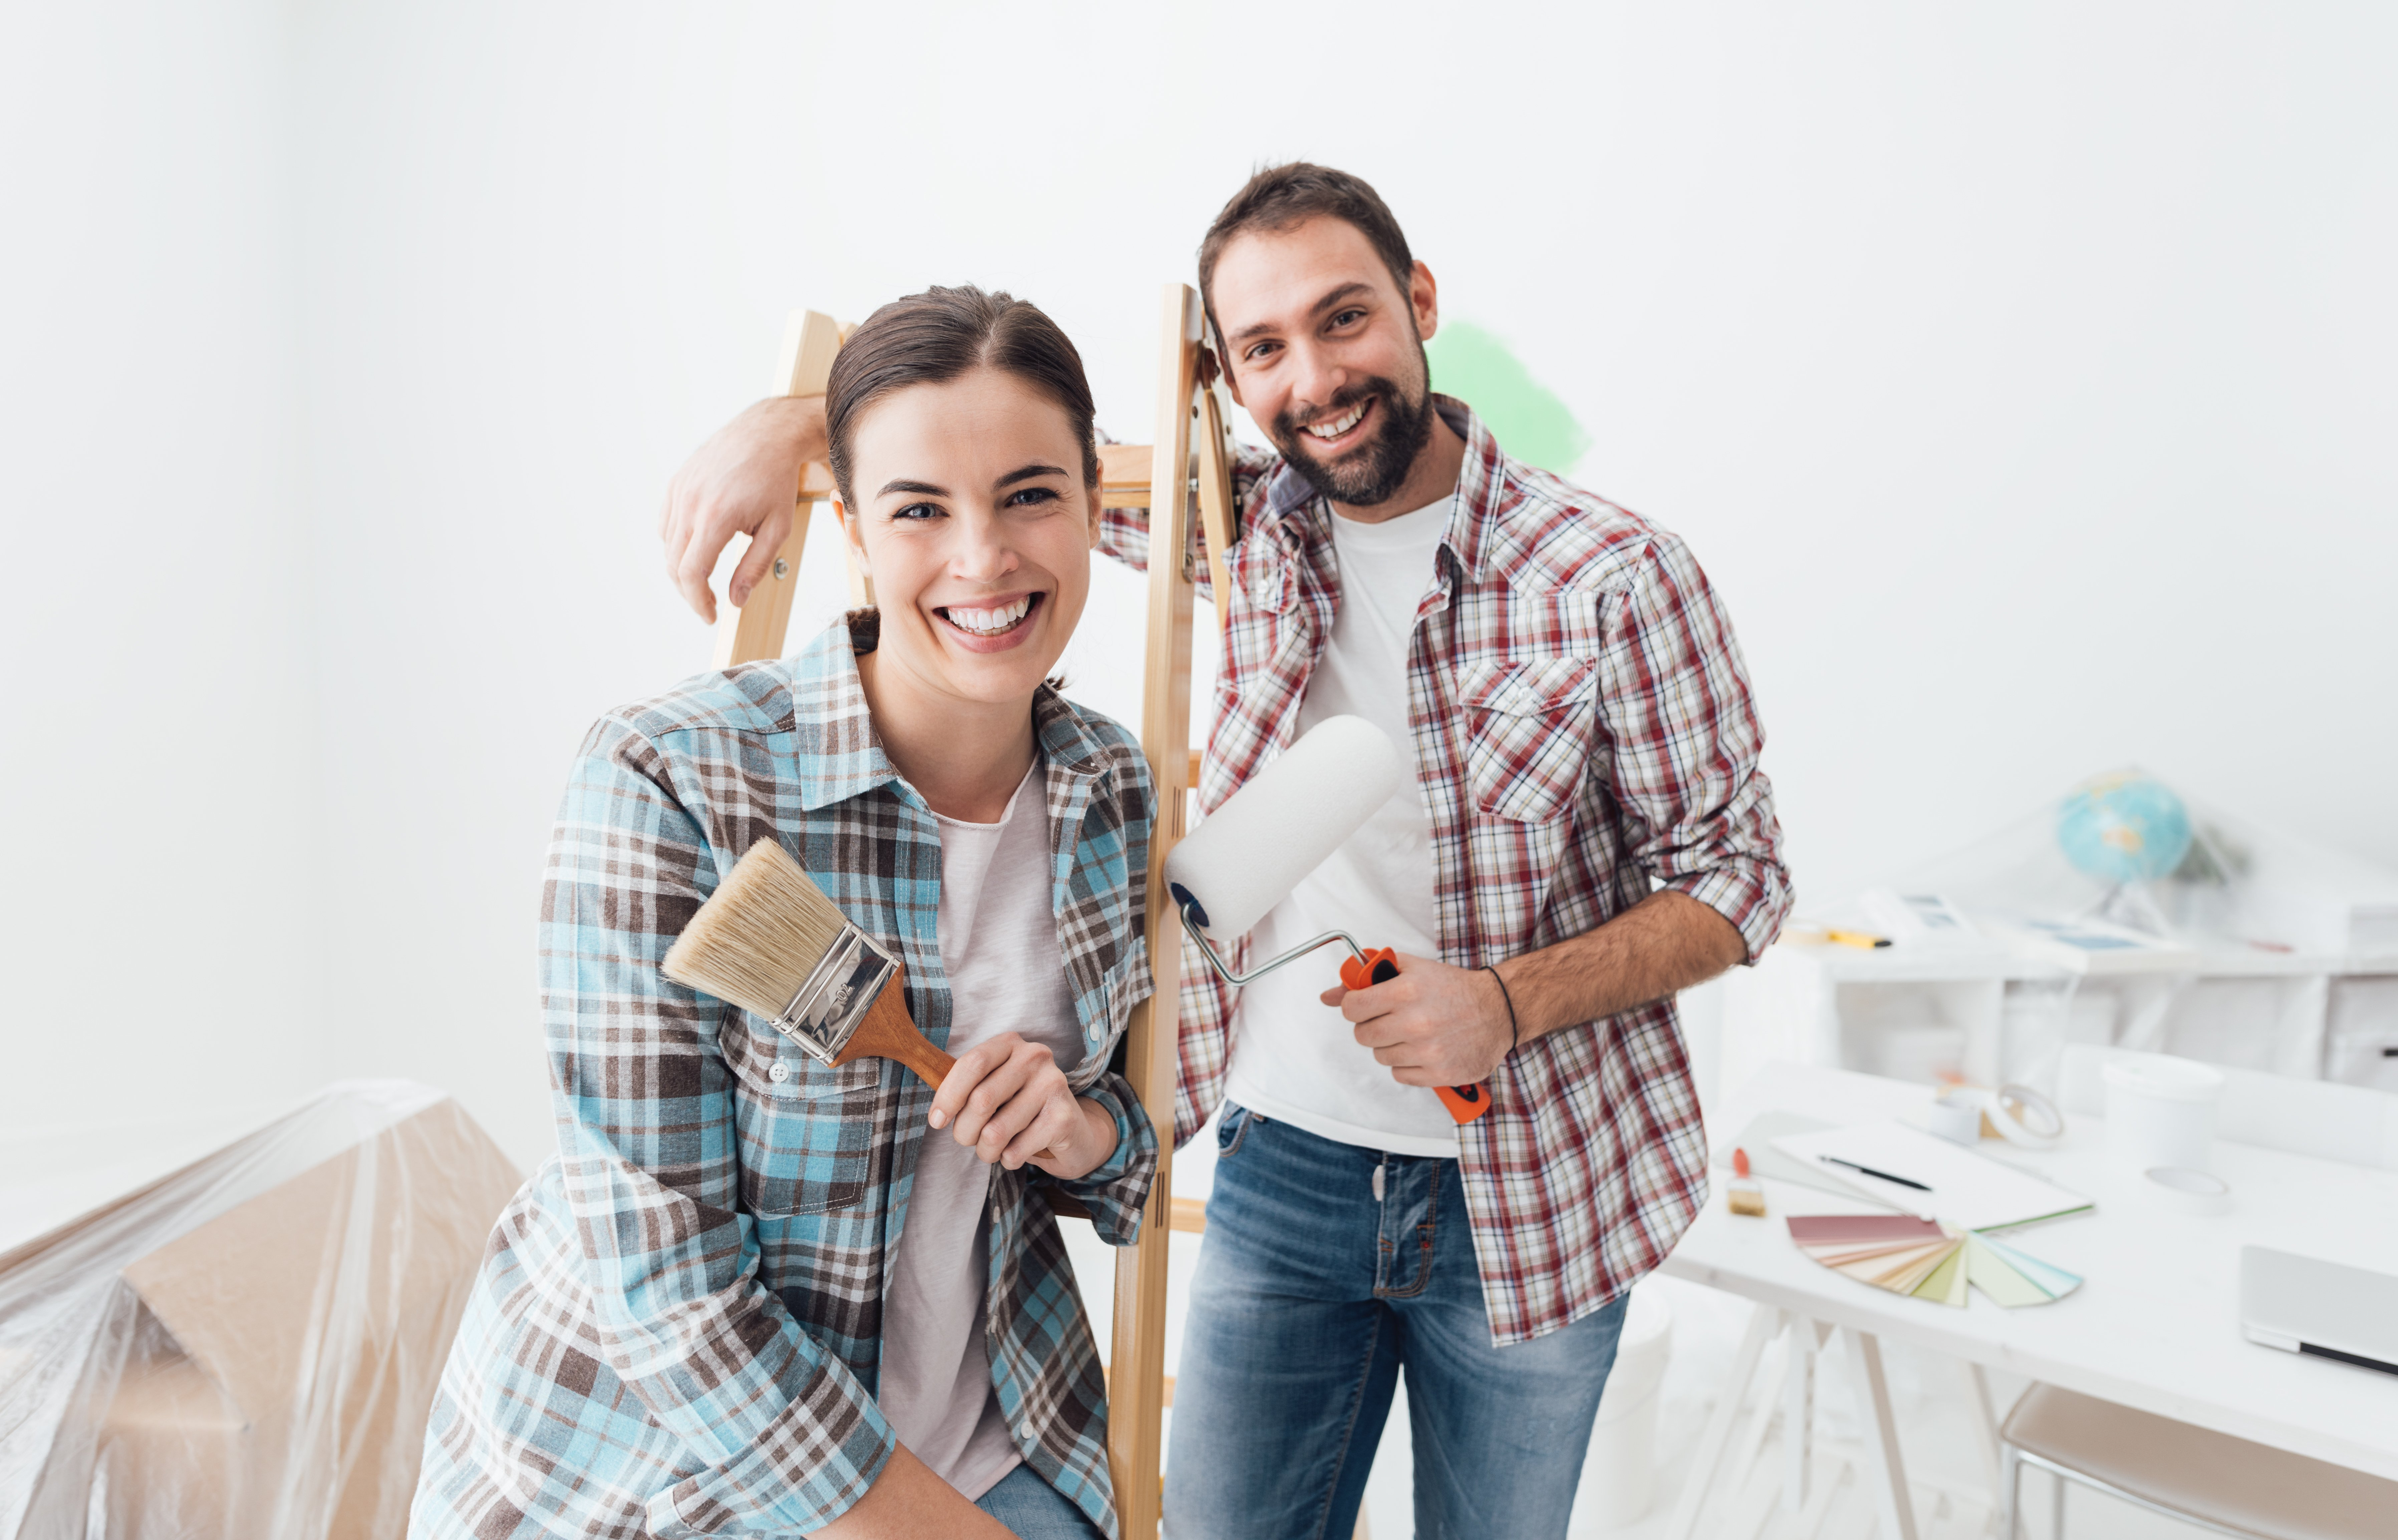 A man and woman painting their home. | Photo: Shutterstock